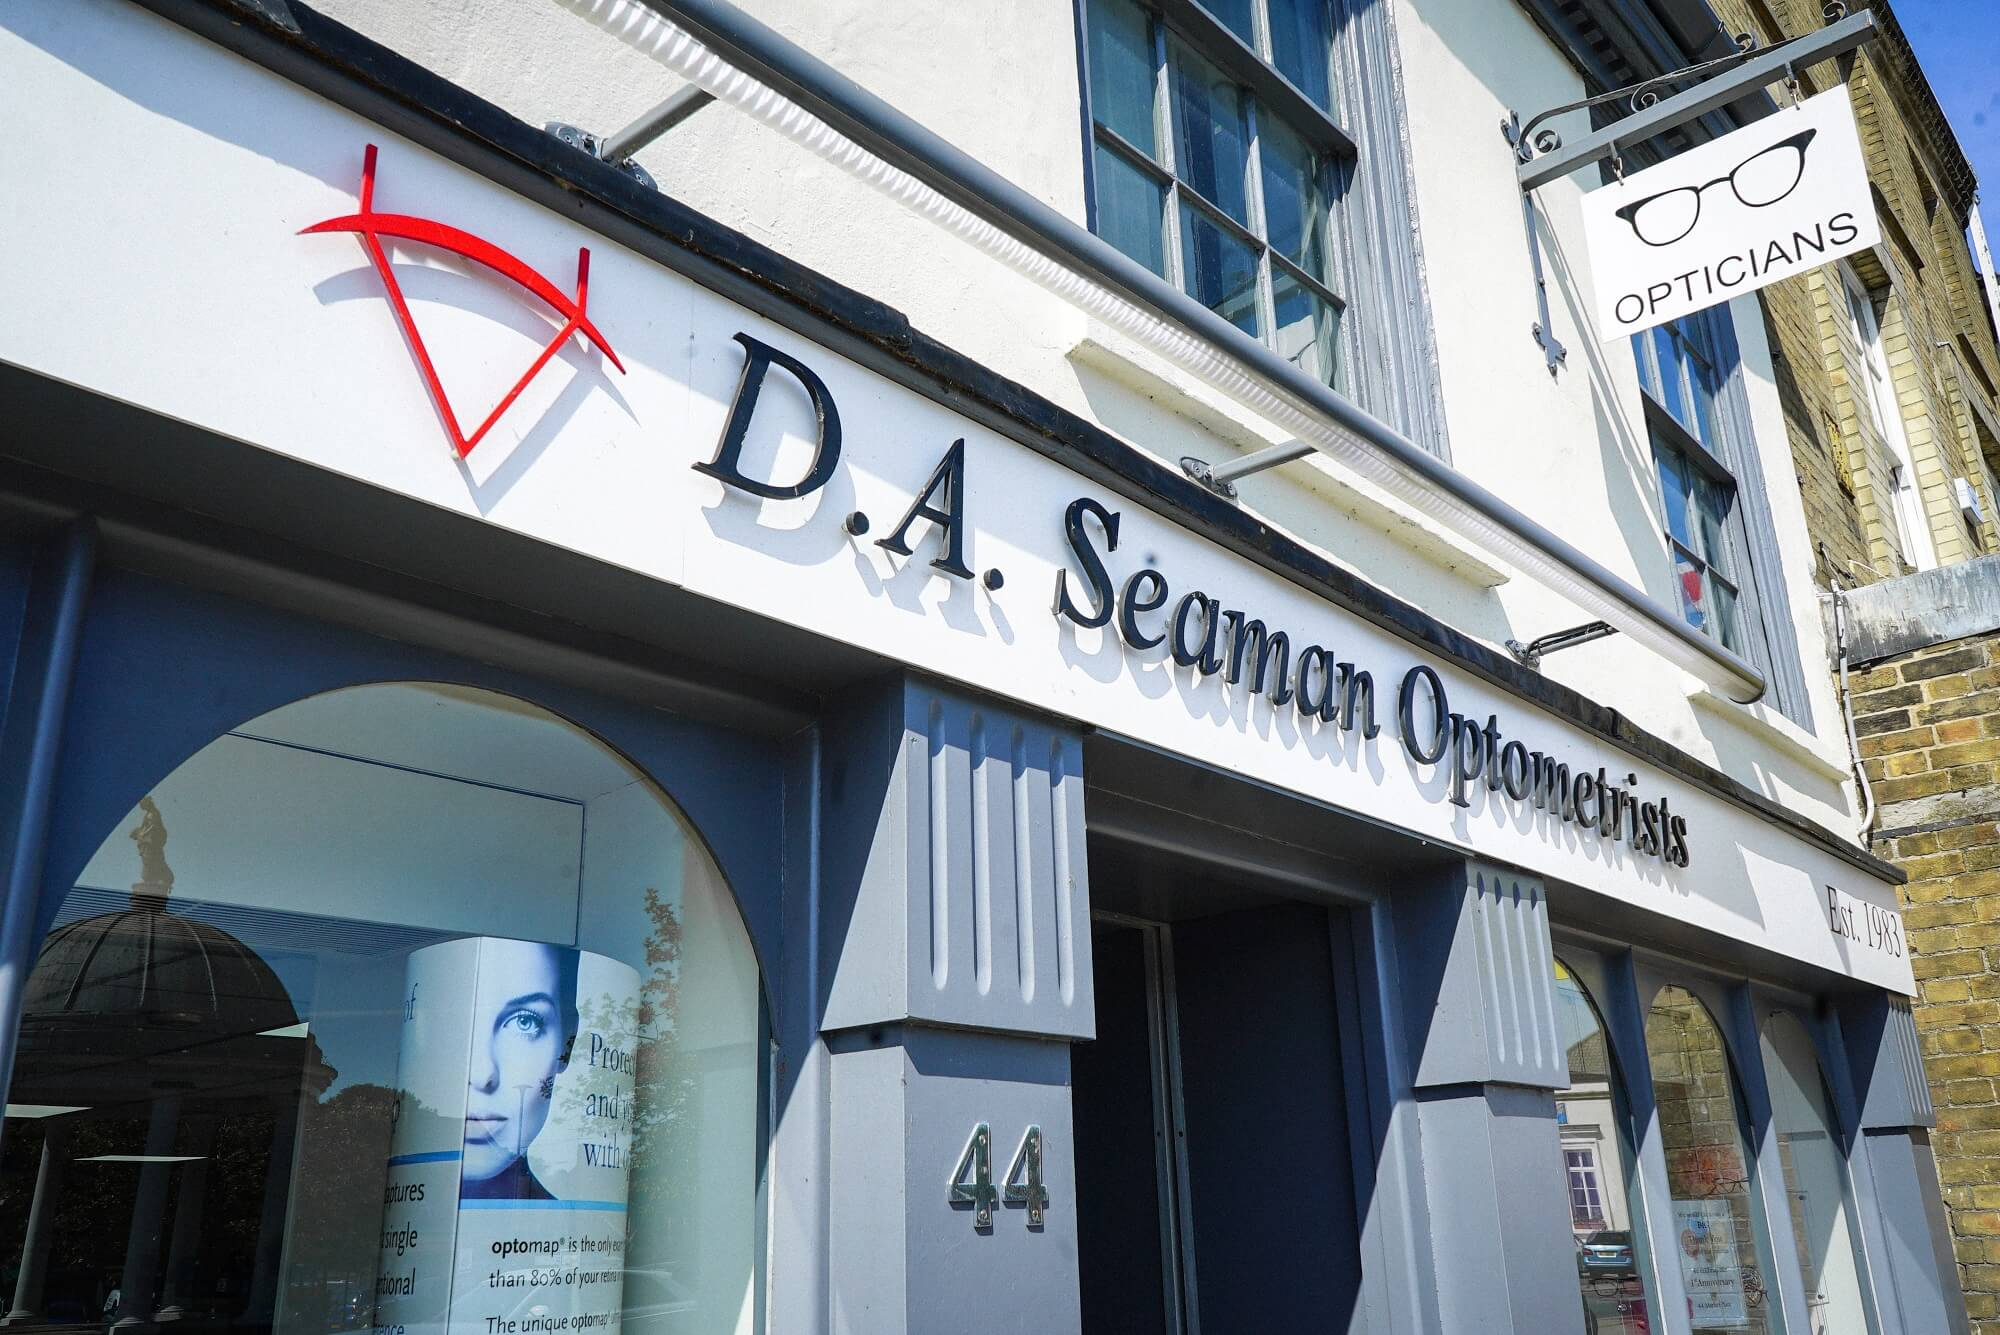 D.A. Seaman Optometrists